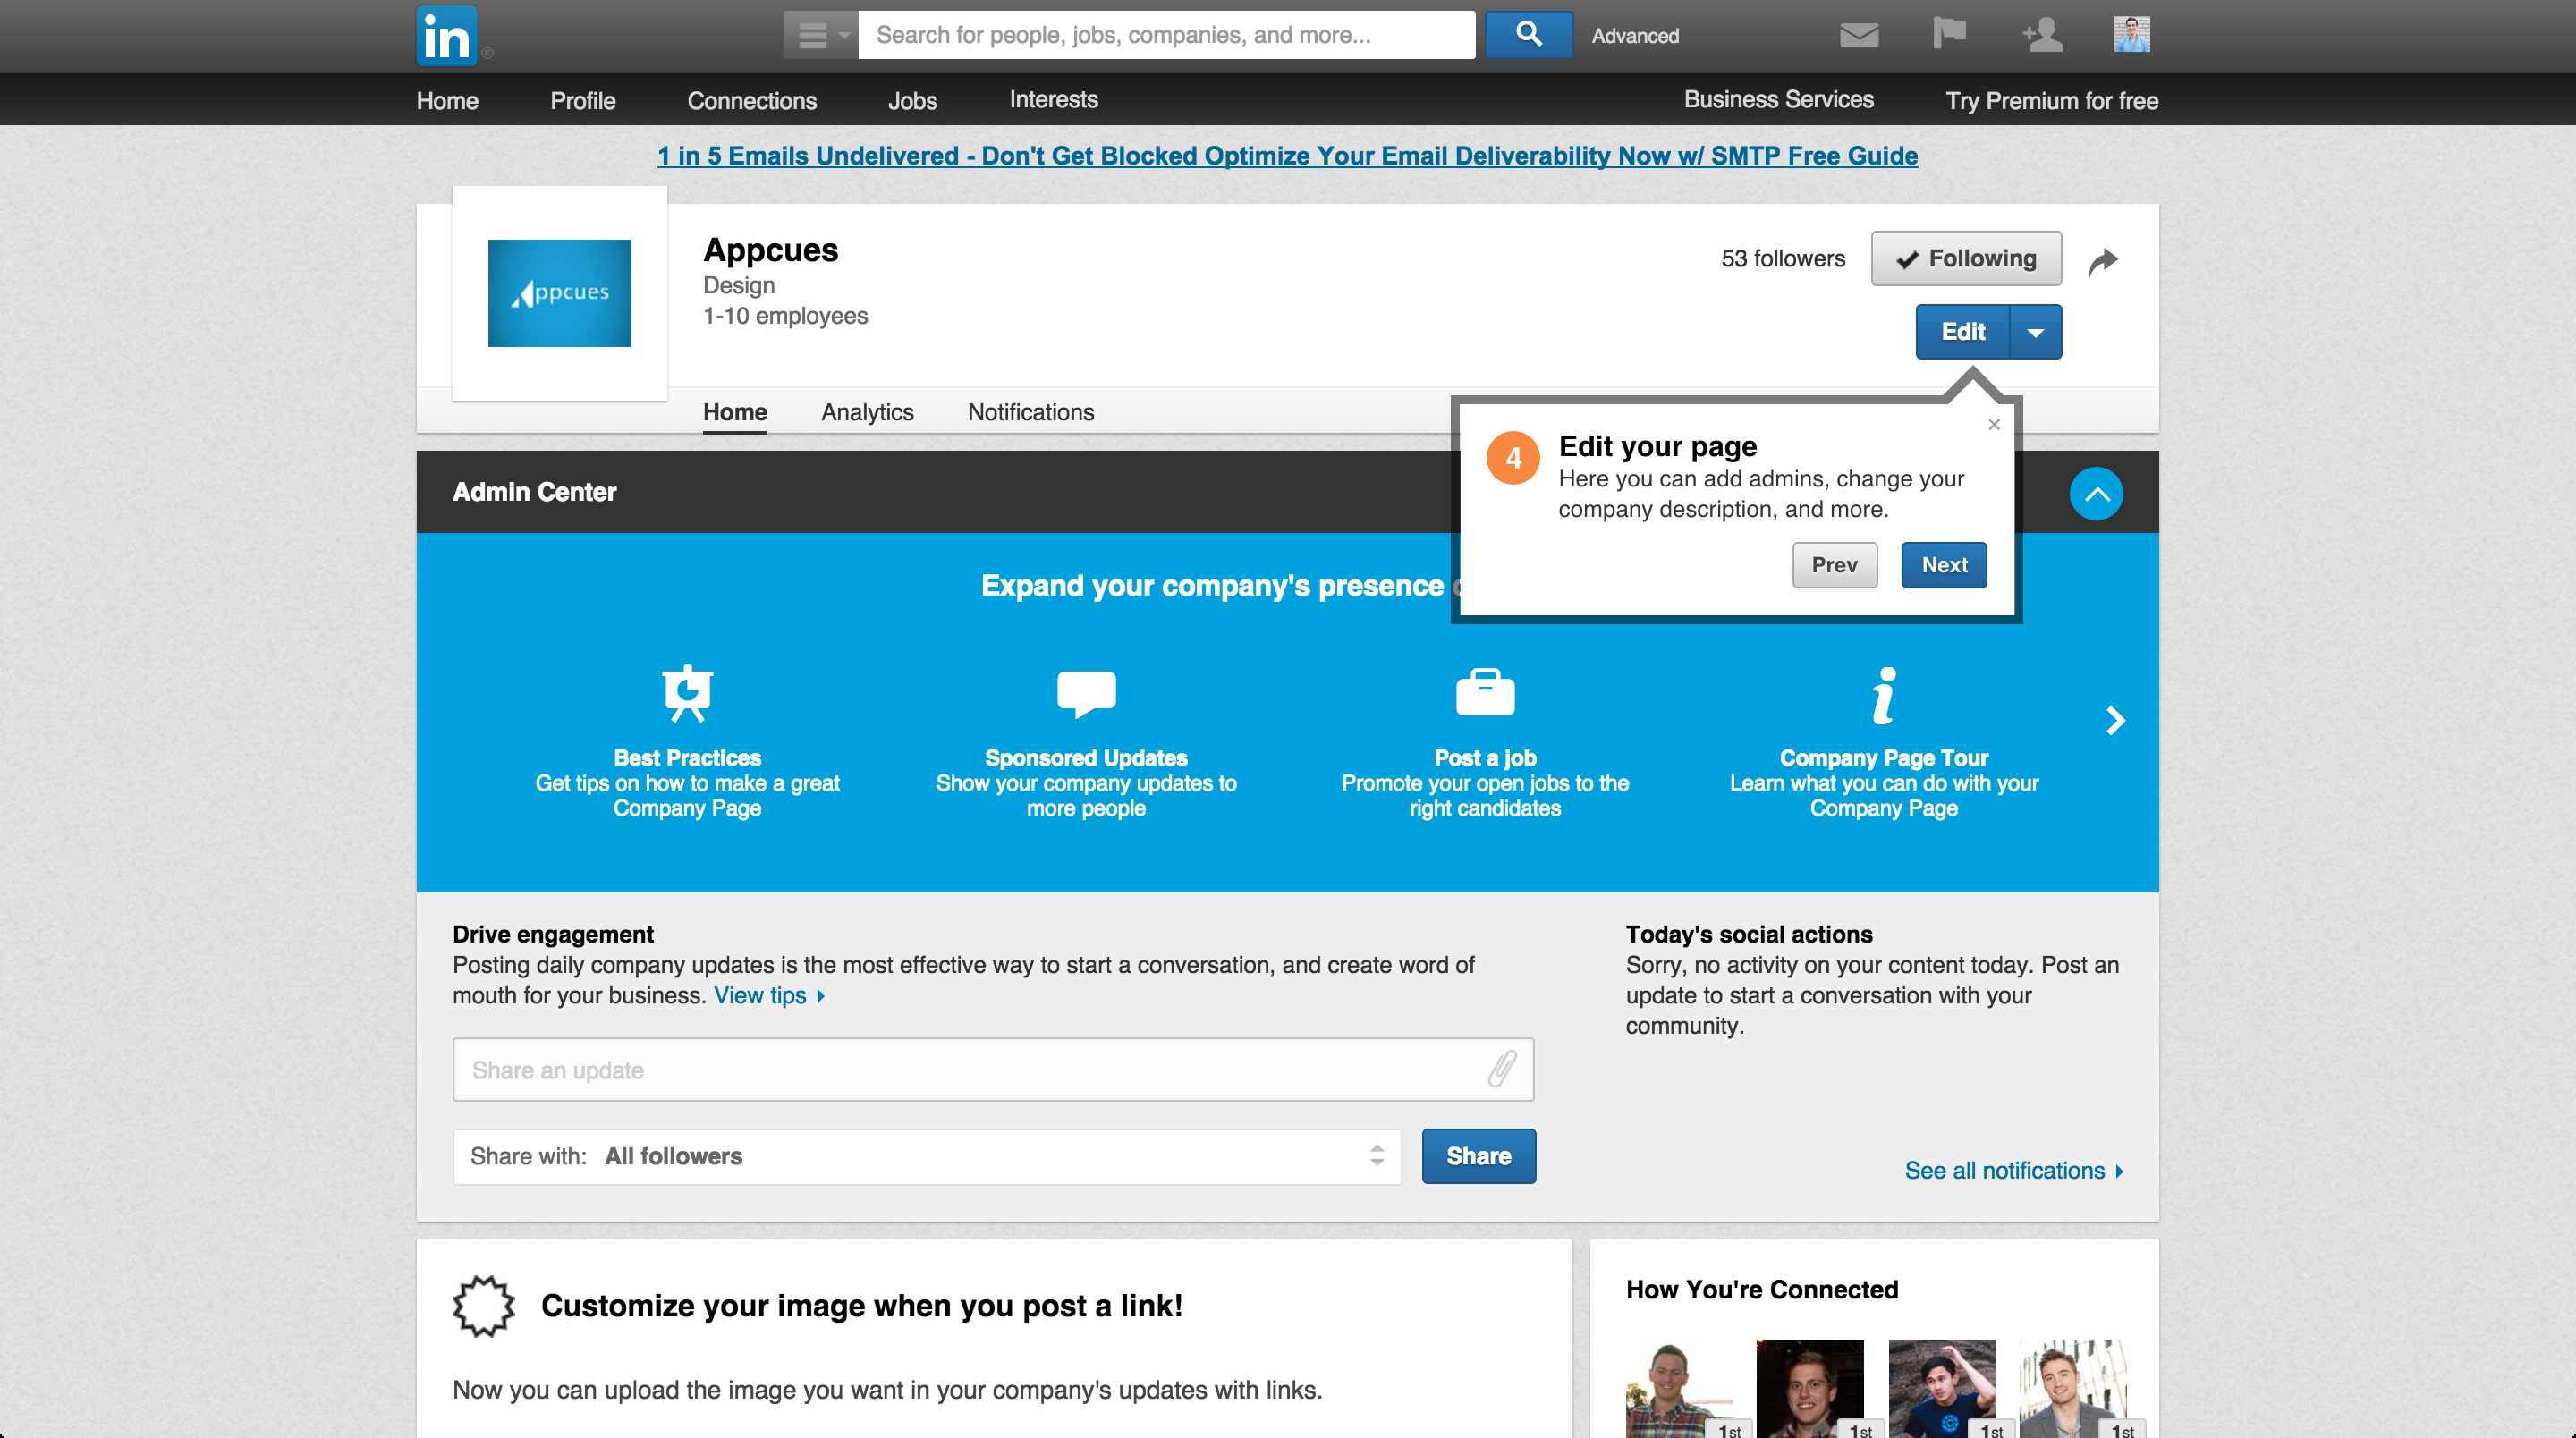 LinkedIn product tour company page 4